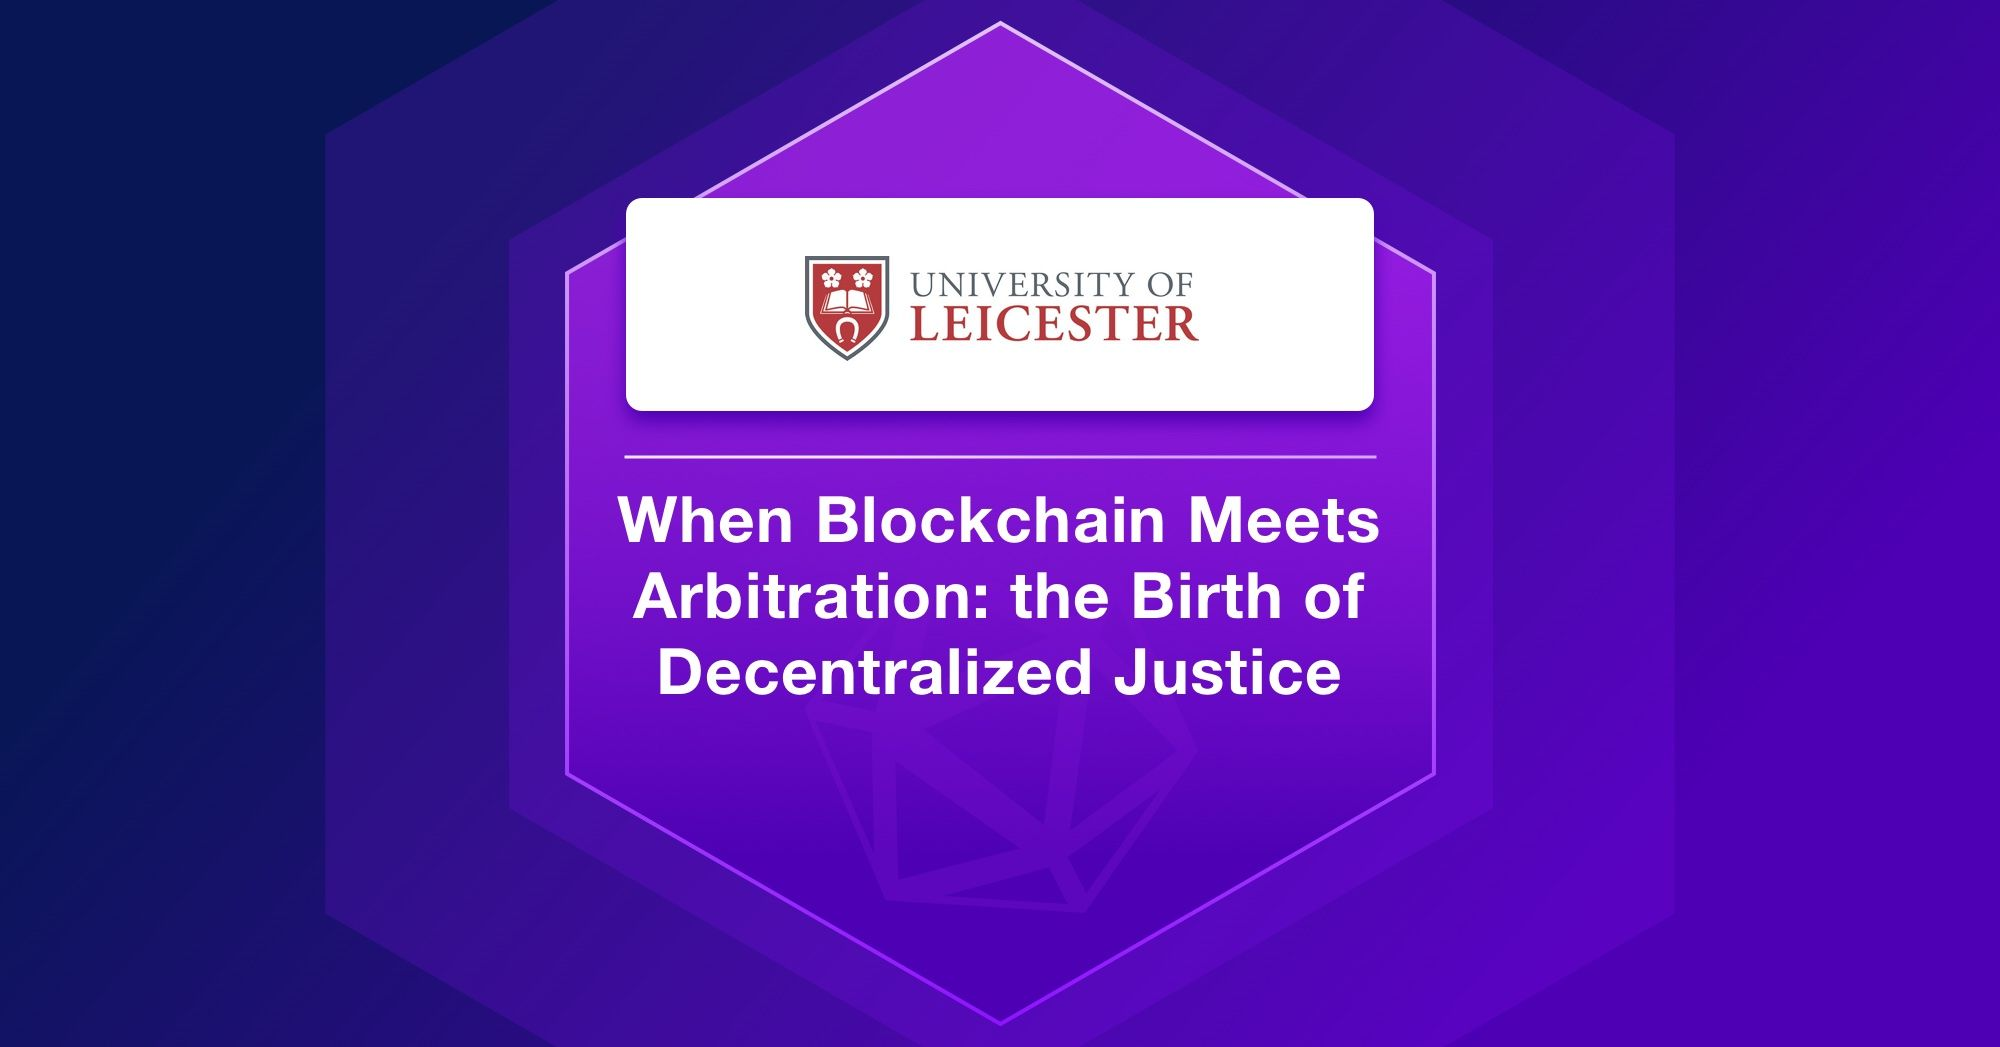 When Blockchain Meets Arbitration: the Birth of Decentralized Justice